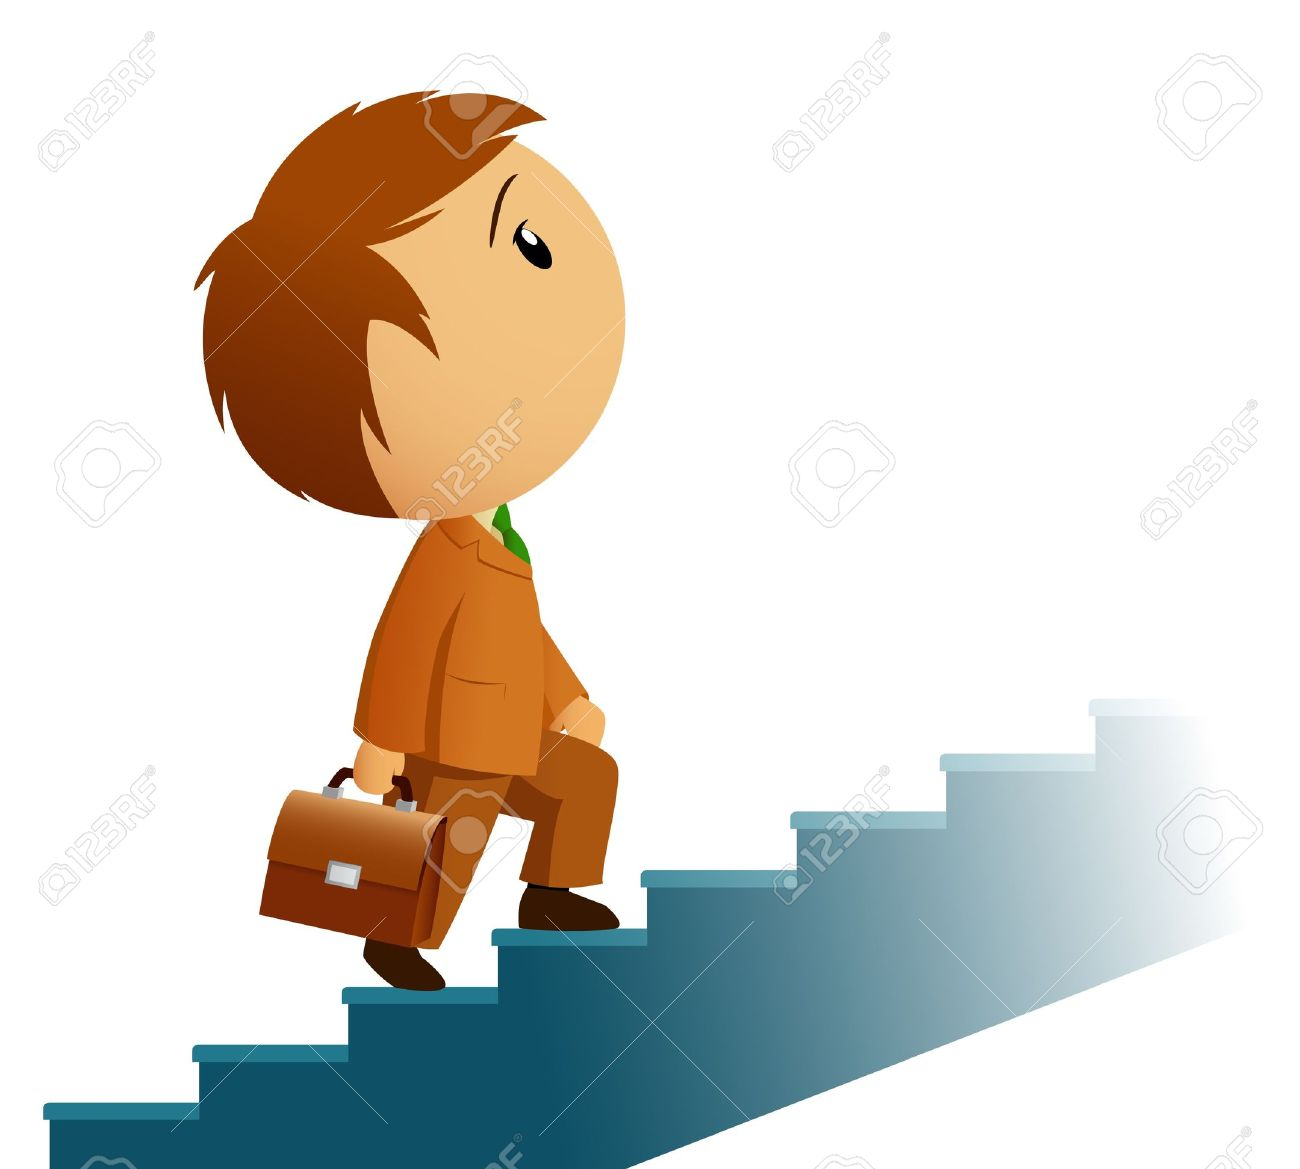 Climbing stairs clipart 5 » Clipart Station.